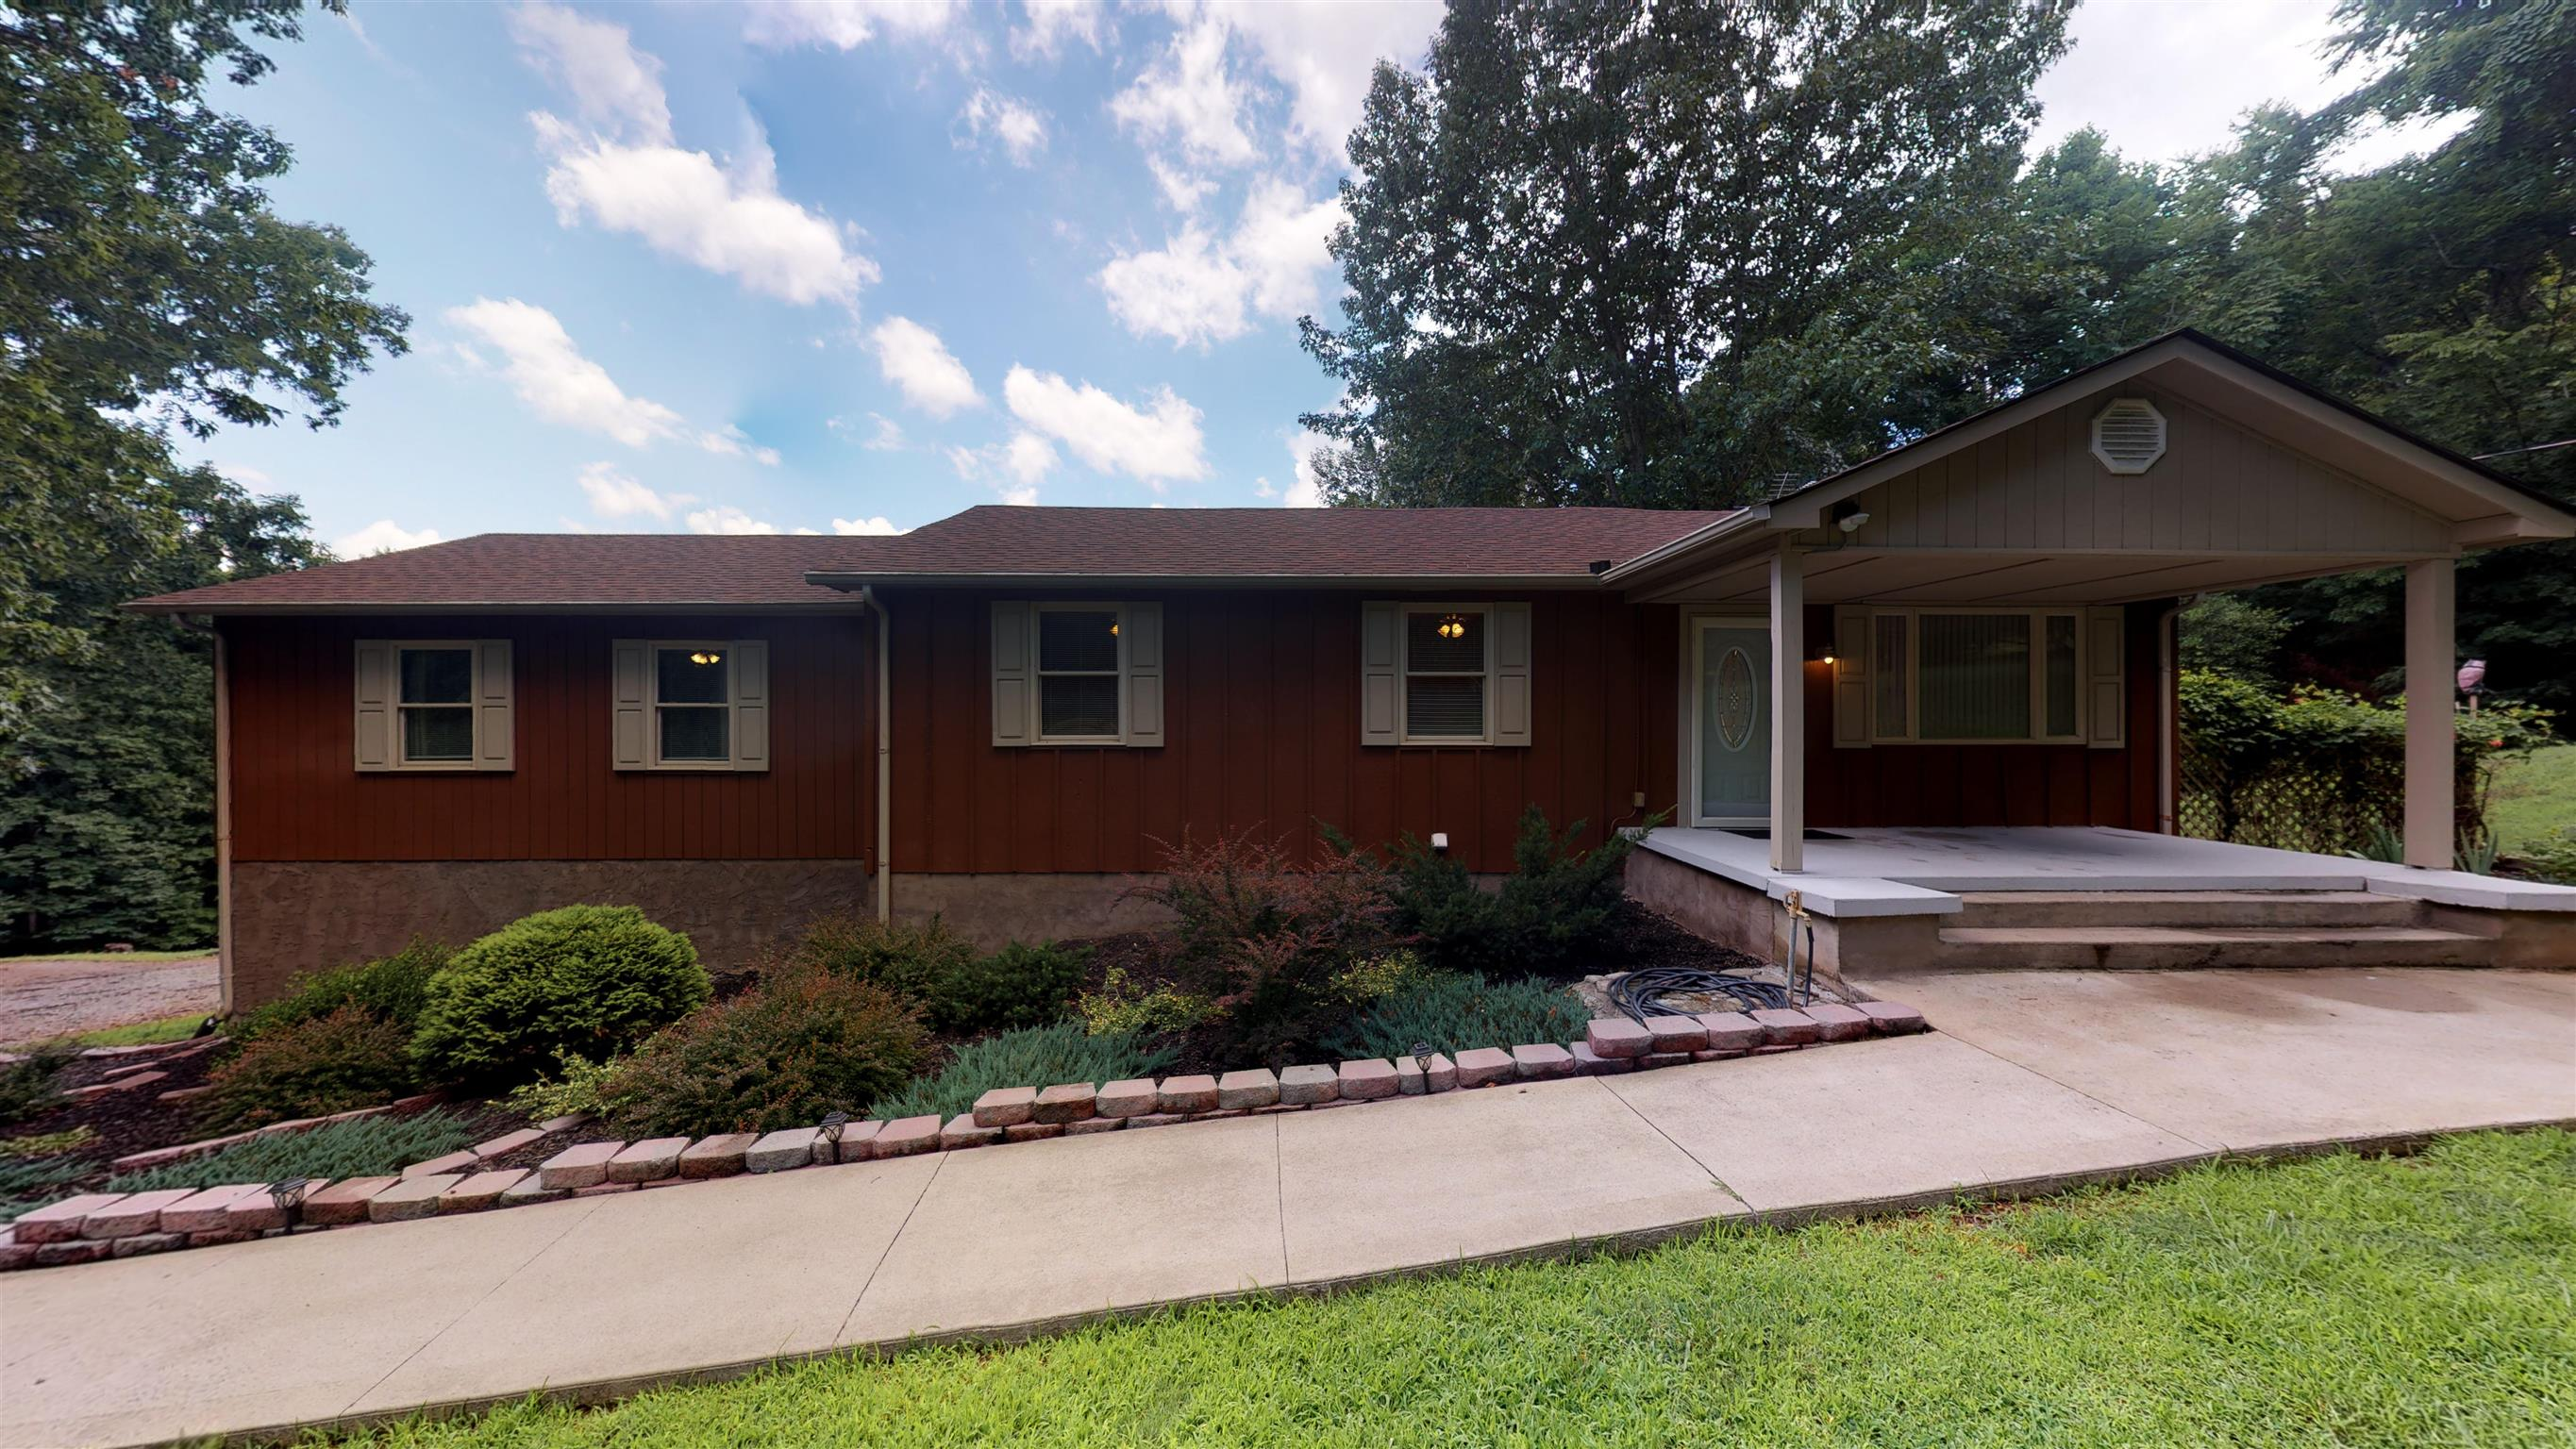 3676 Reed Rd, Indian Mound, TN 37079 - Indian Mound, TN real estate listing